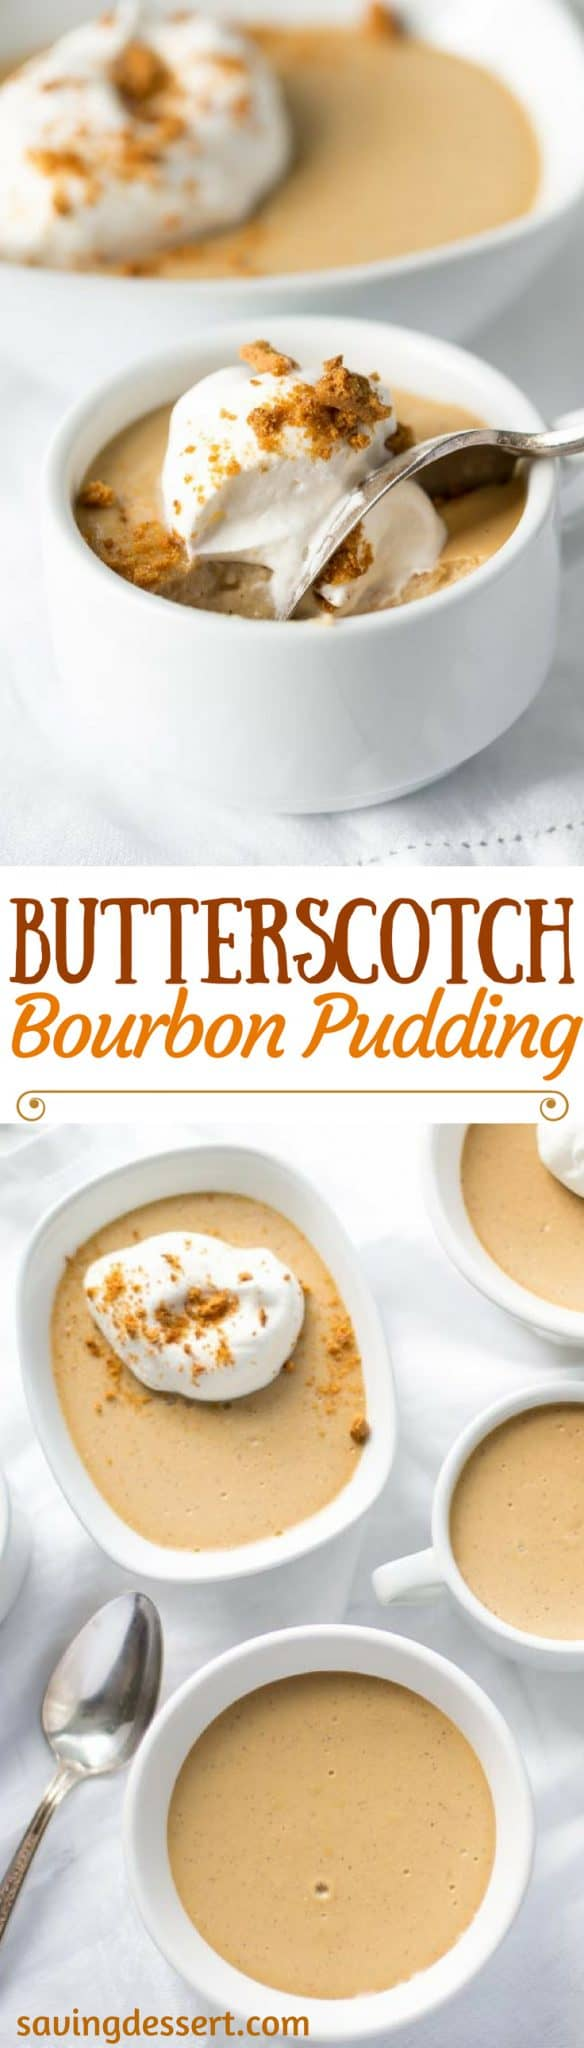 Butterscotch-Bourbon Pudding - An easy, make-ahead creamy pudding spiked with bourbon and topped with sweetened cream and crushed ginger snap cookies www.savingdessert.com